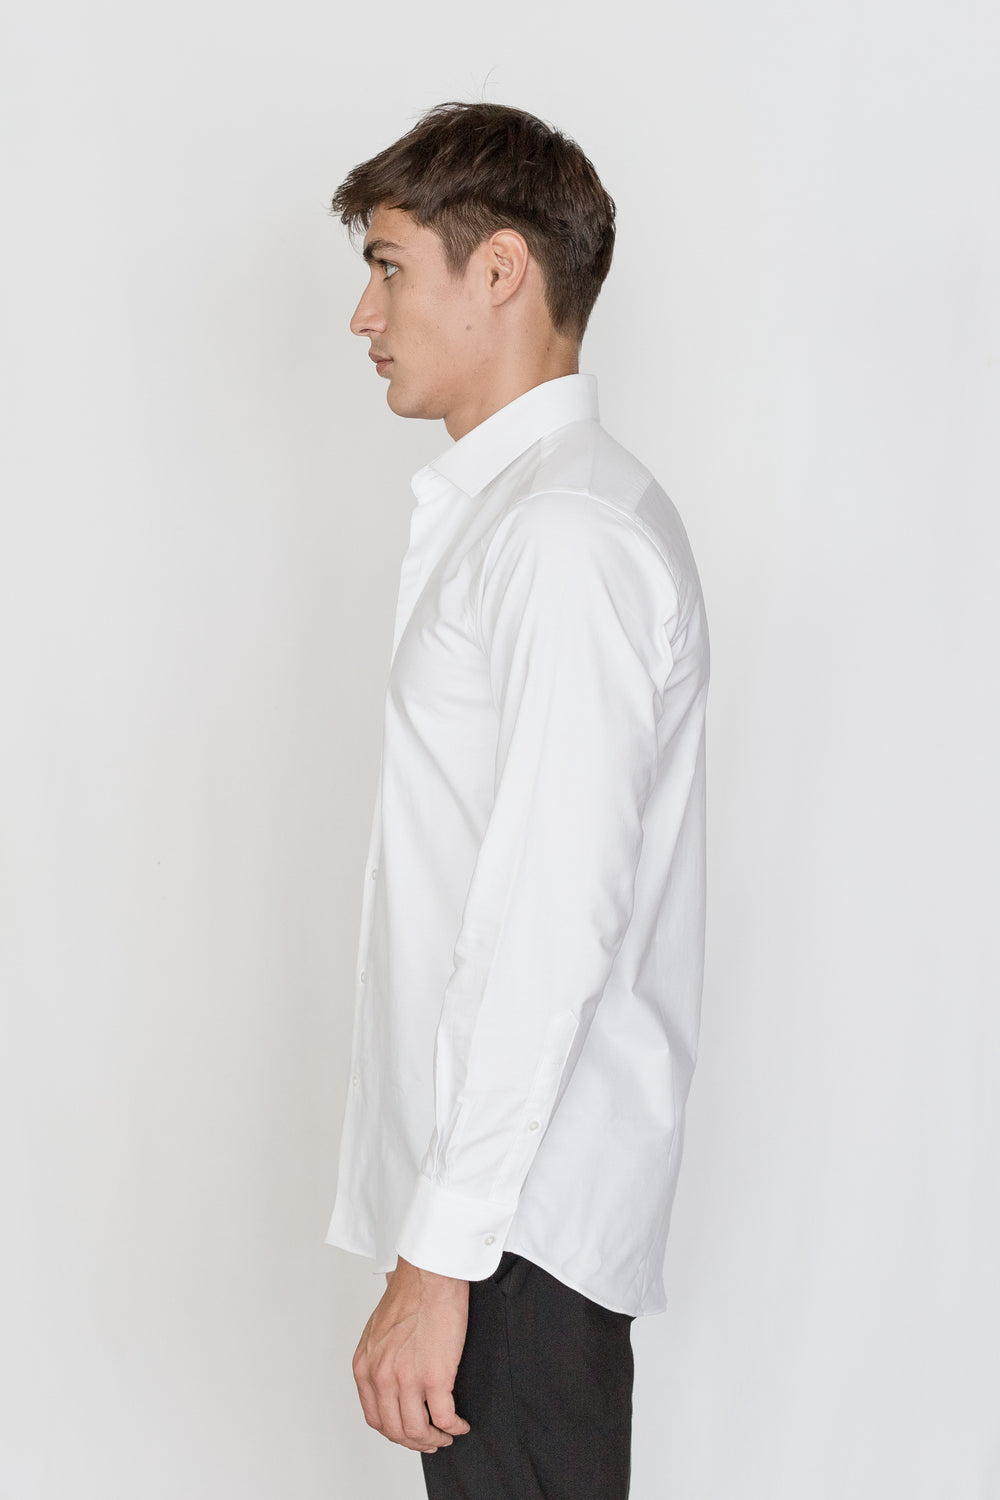 Mason Ward Aarhus White Oxford Fashion Fit/ Regular Cuff Shirt